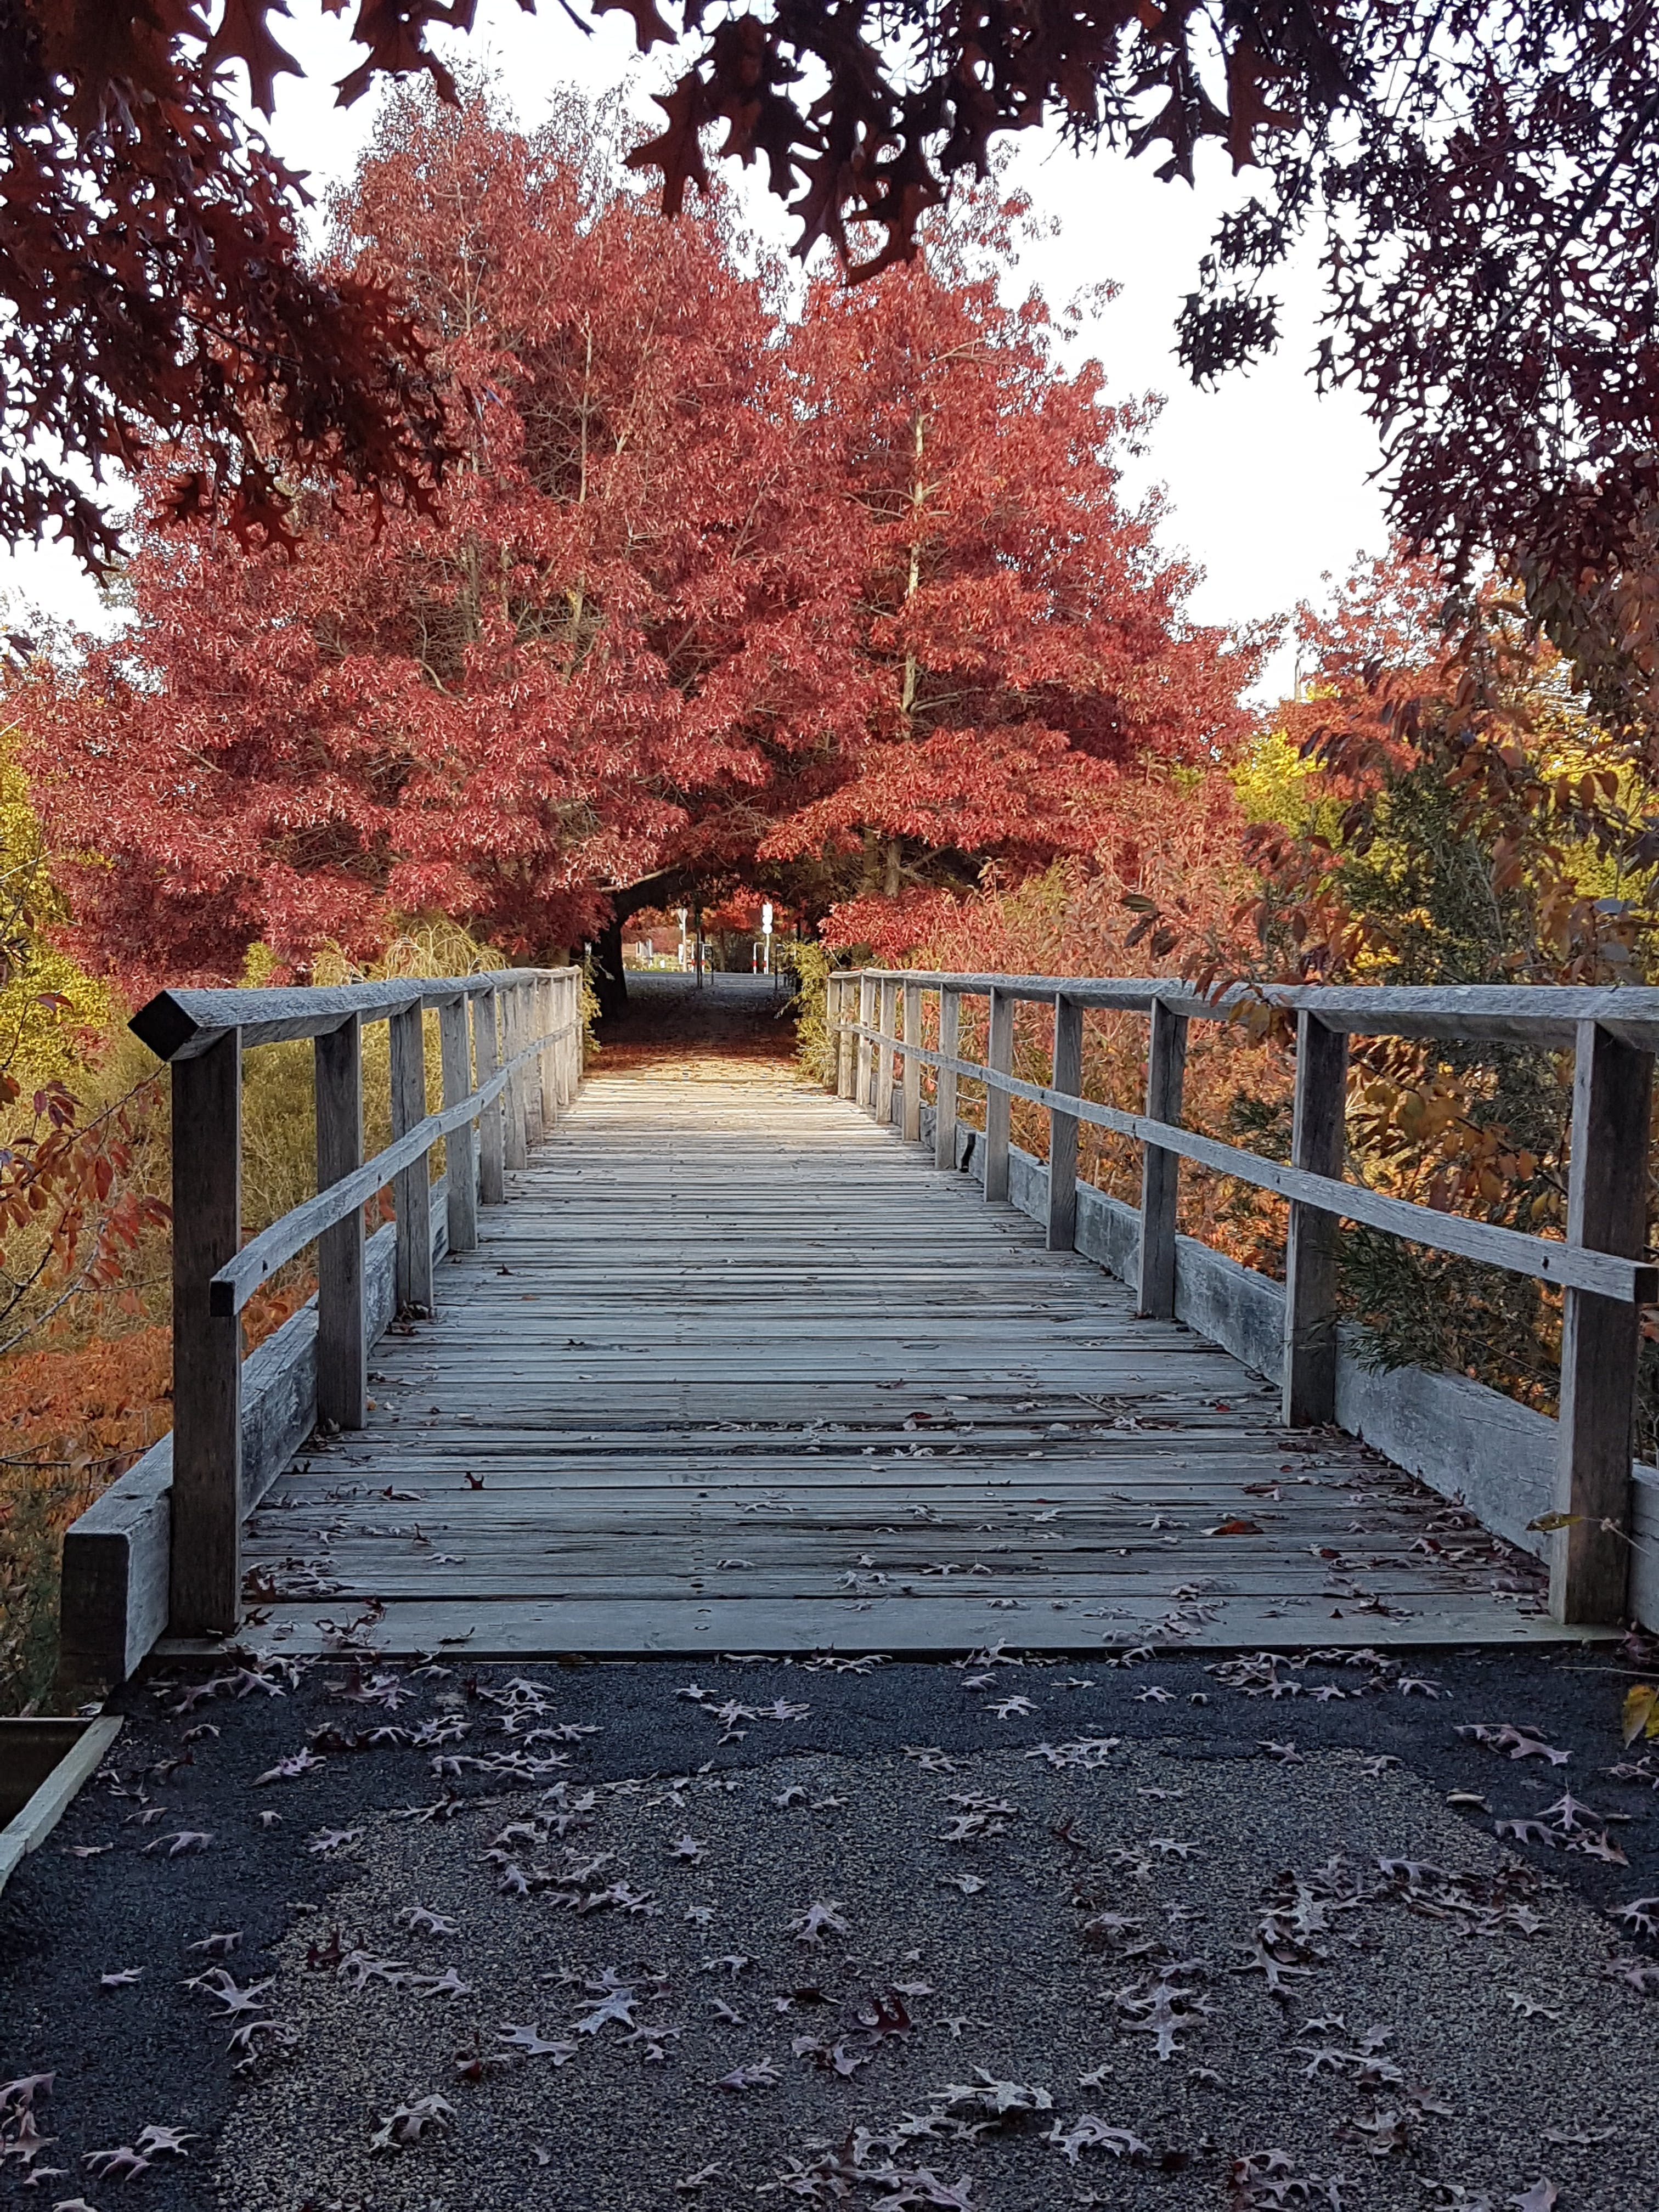 Free stock photo of autumn, bridge, park, trees